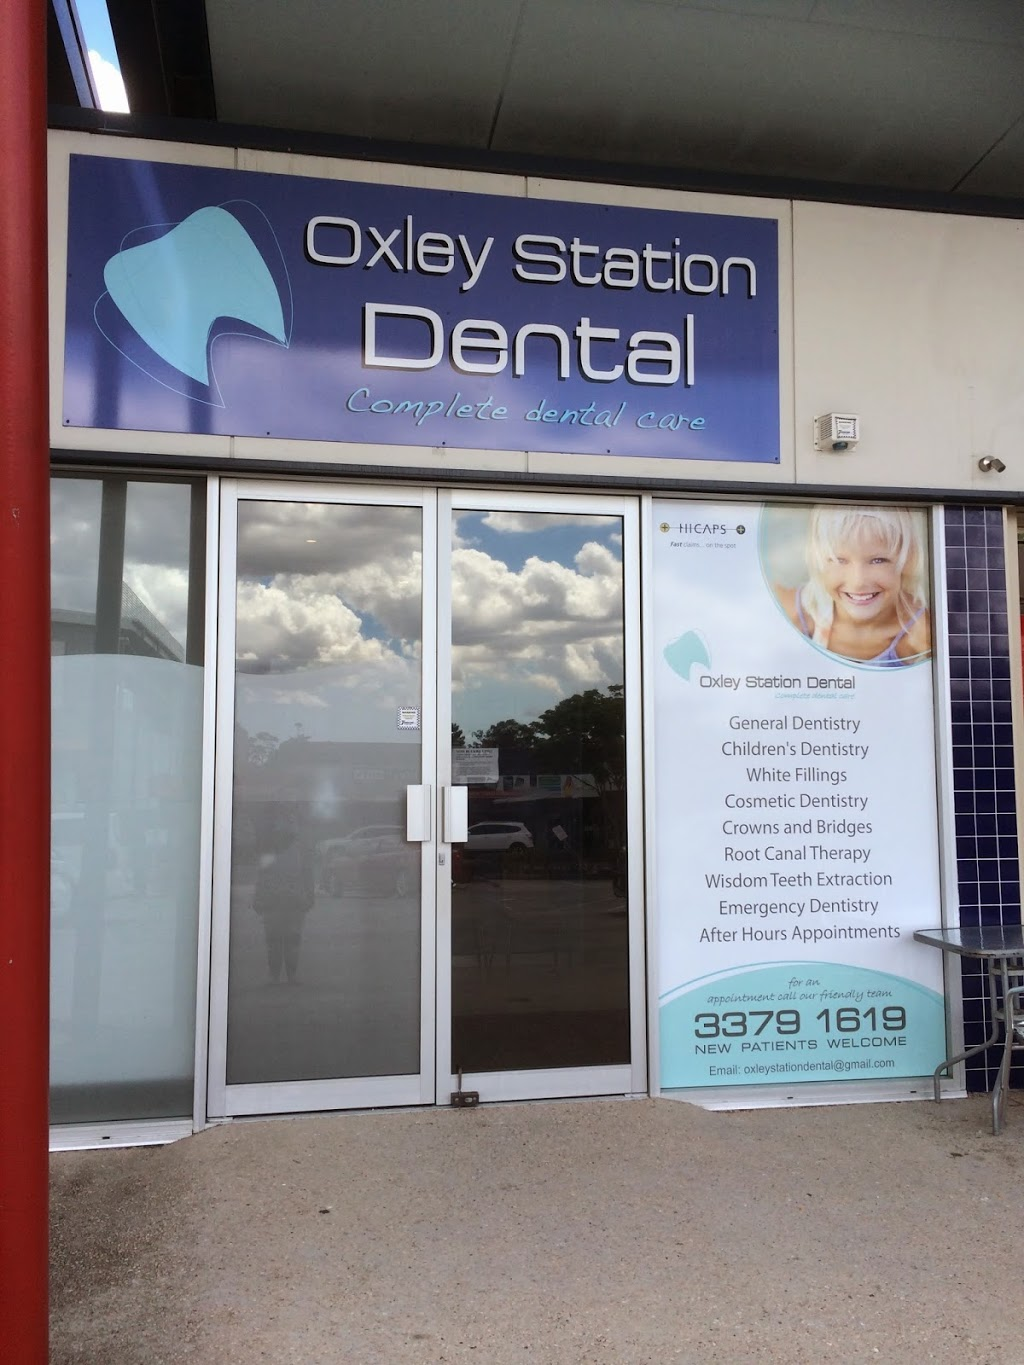 Oxley Station Dental | dentist | 8/130 Oxley Station Rd, Oxley QLD 4075, Australia | 0733791619 OR +61 7 3379 1619